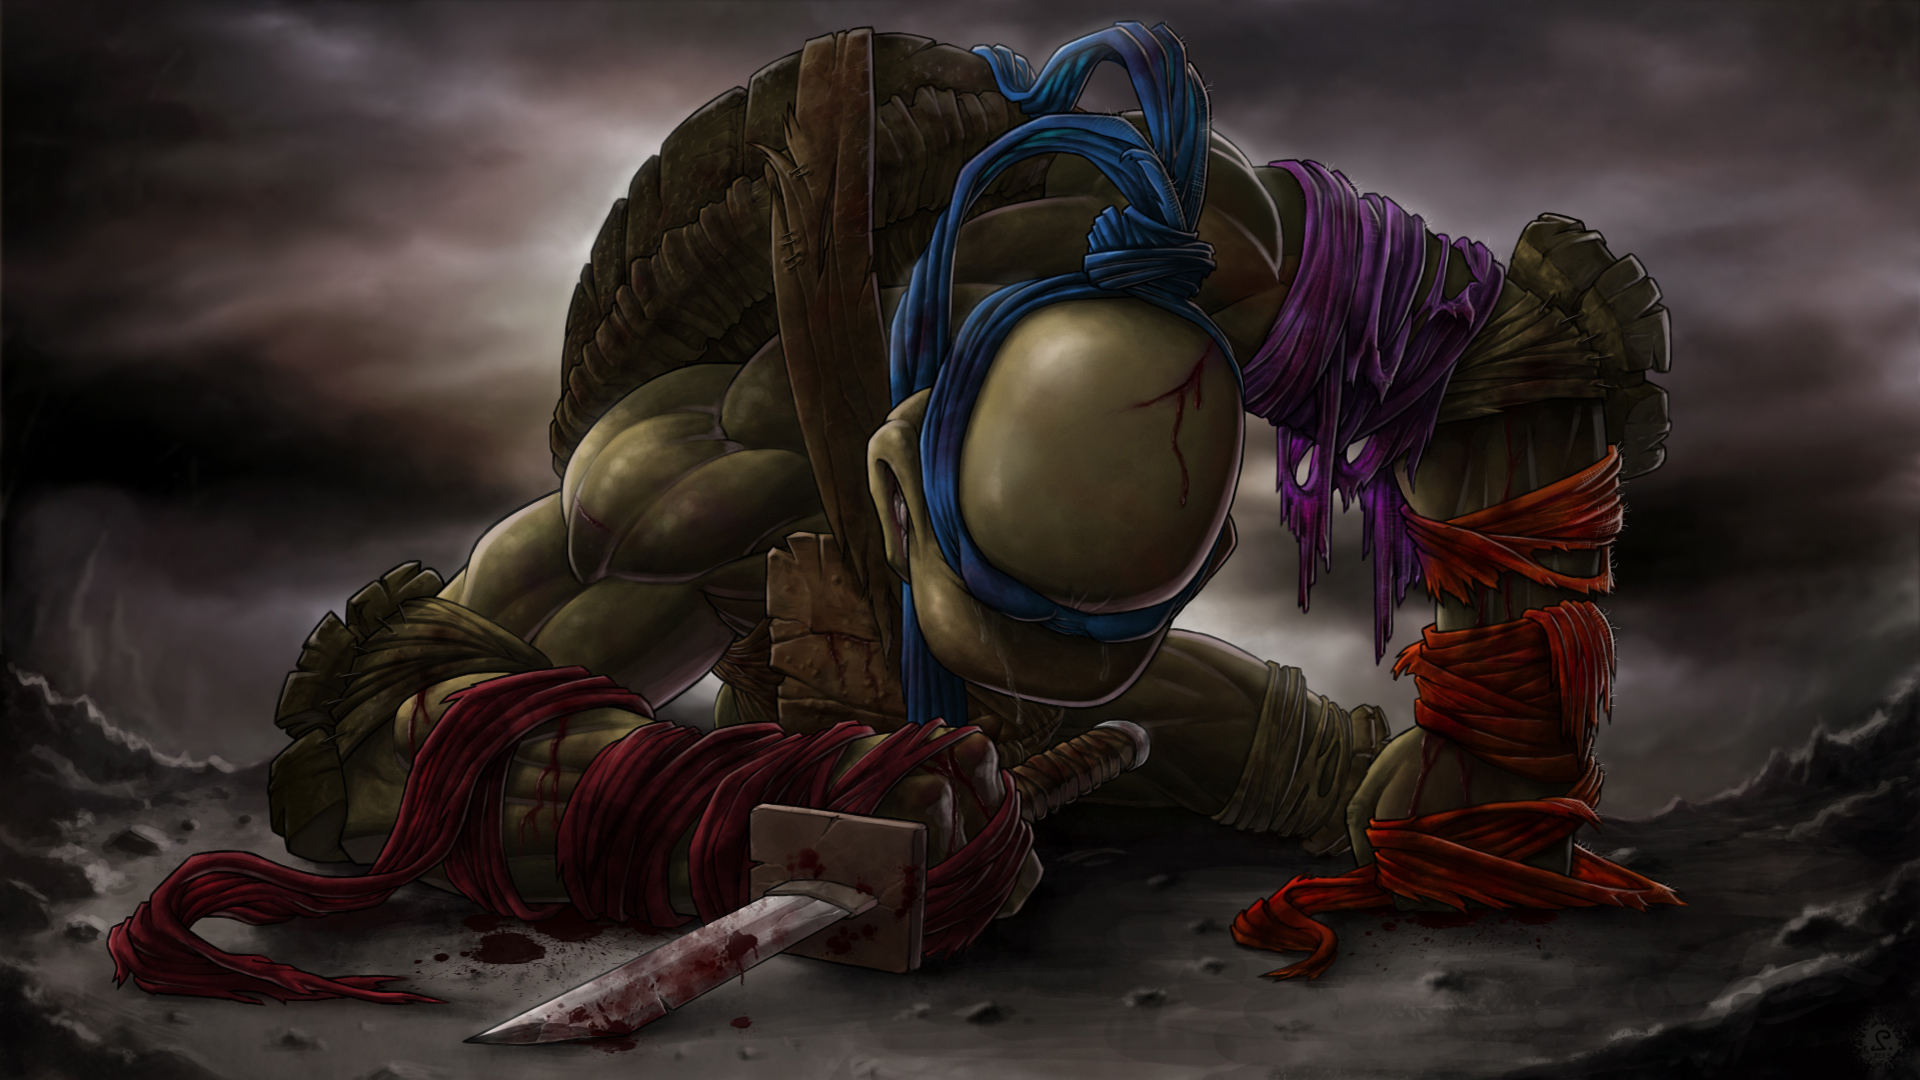 Leonardo TMNT Last Fight Exclusive HD Wallpapers 6619 1920x1080